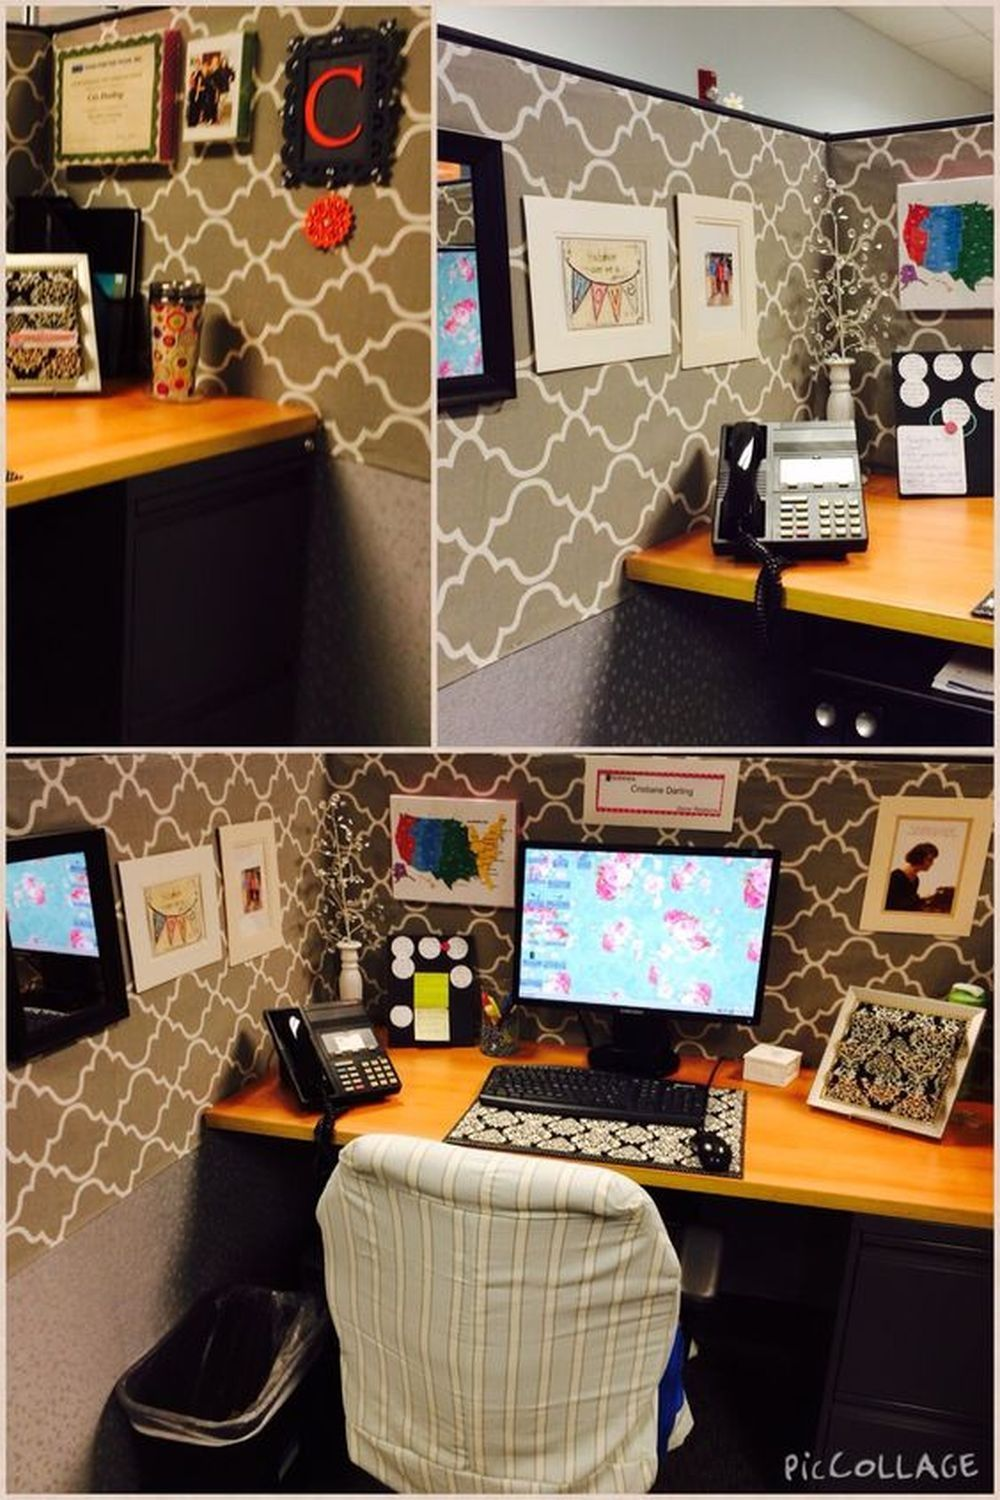 15 Diy Decorating Cubicle Working Space Ideas Godiygo Com Cubicle Decor Office Cubicle Makeover Work Cubicle Decor